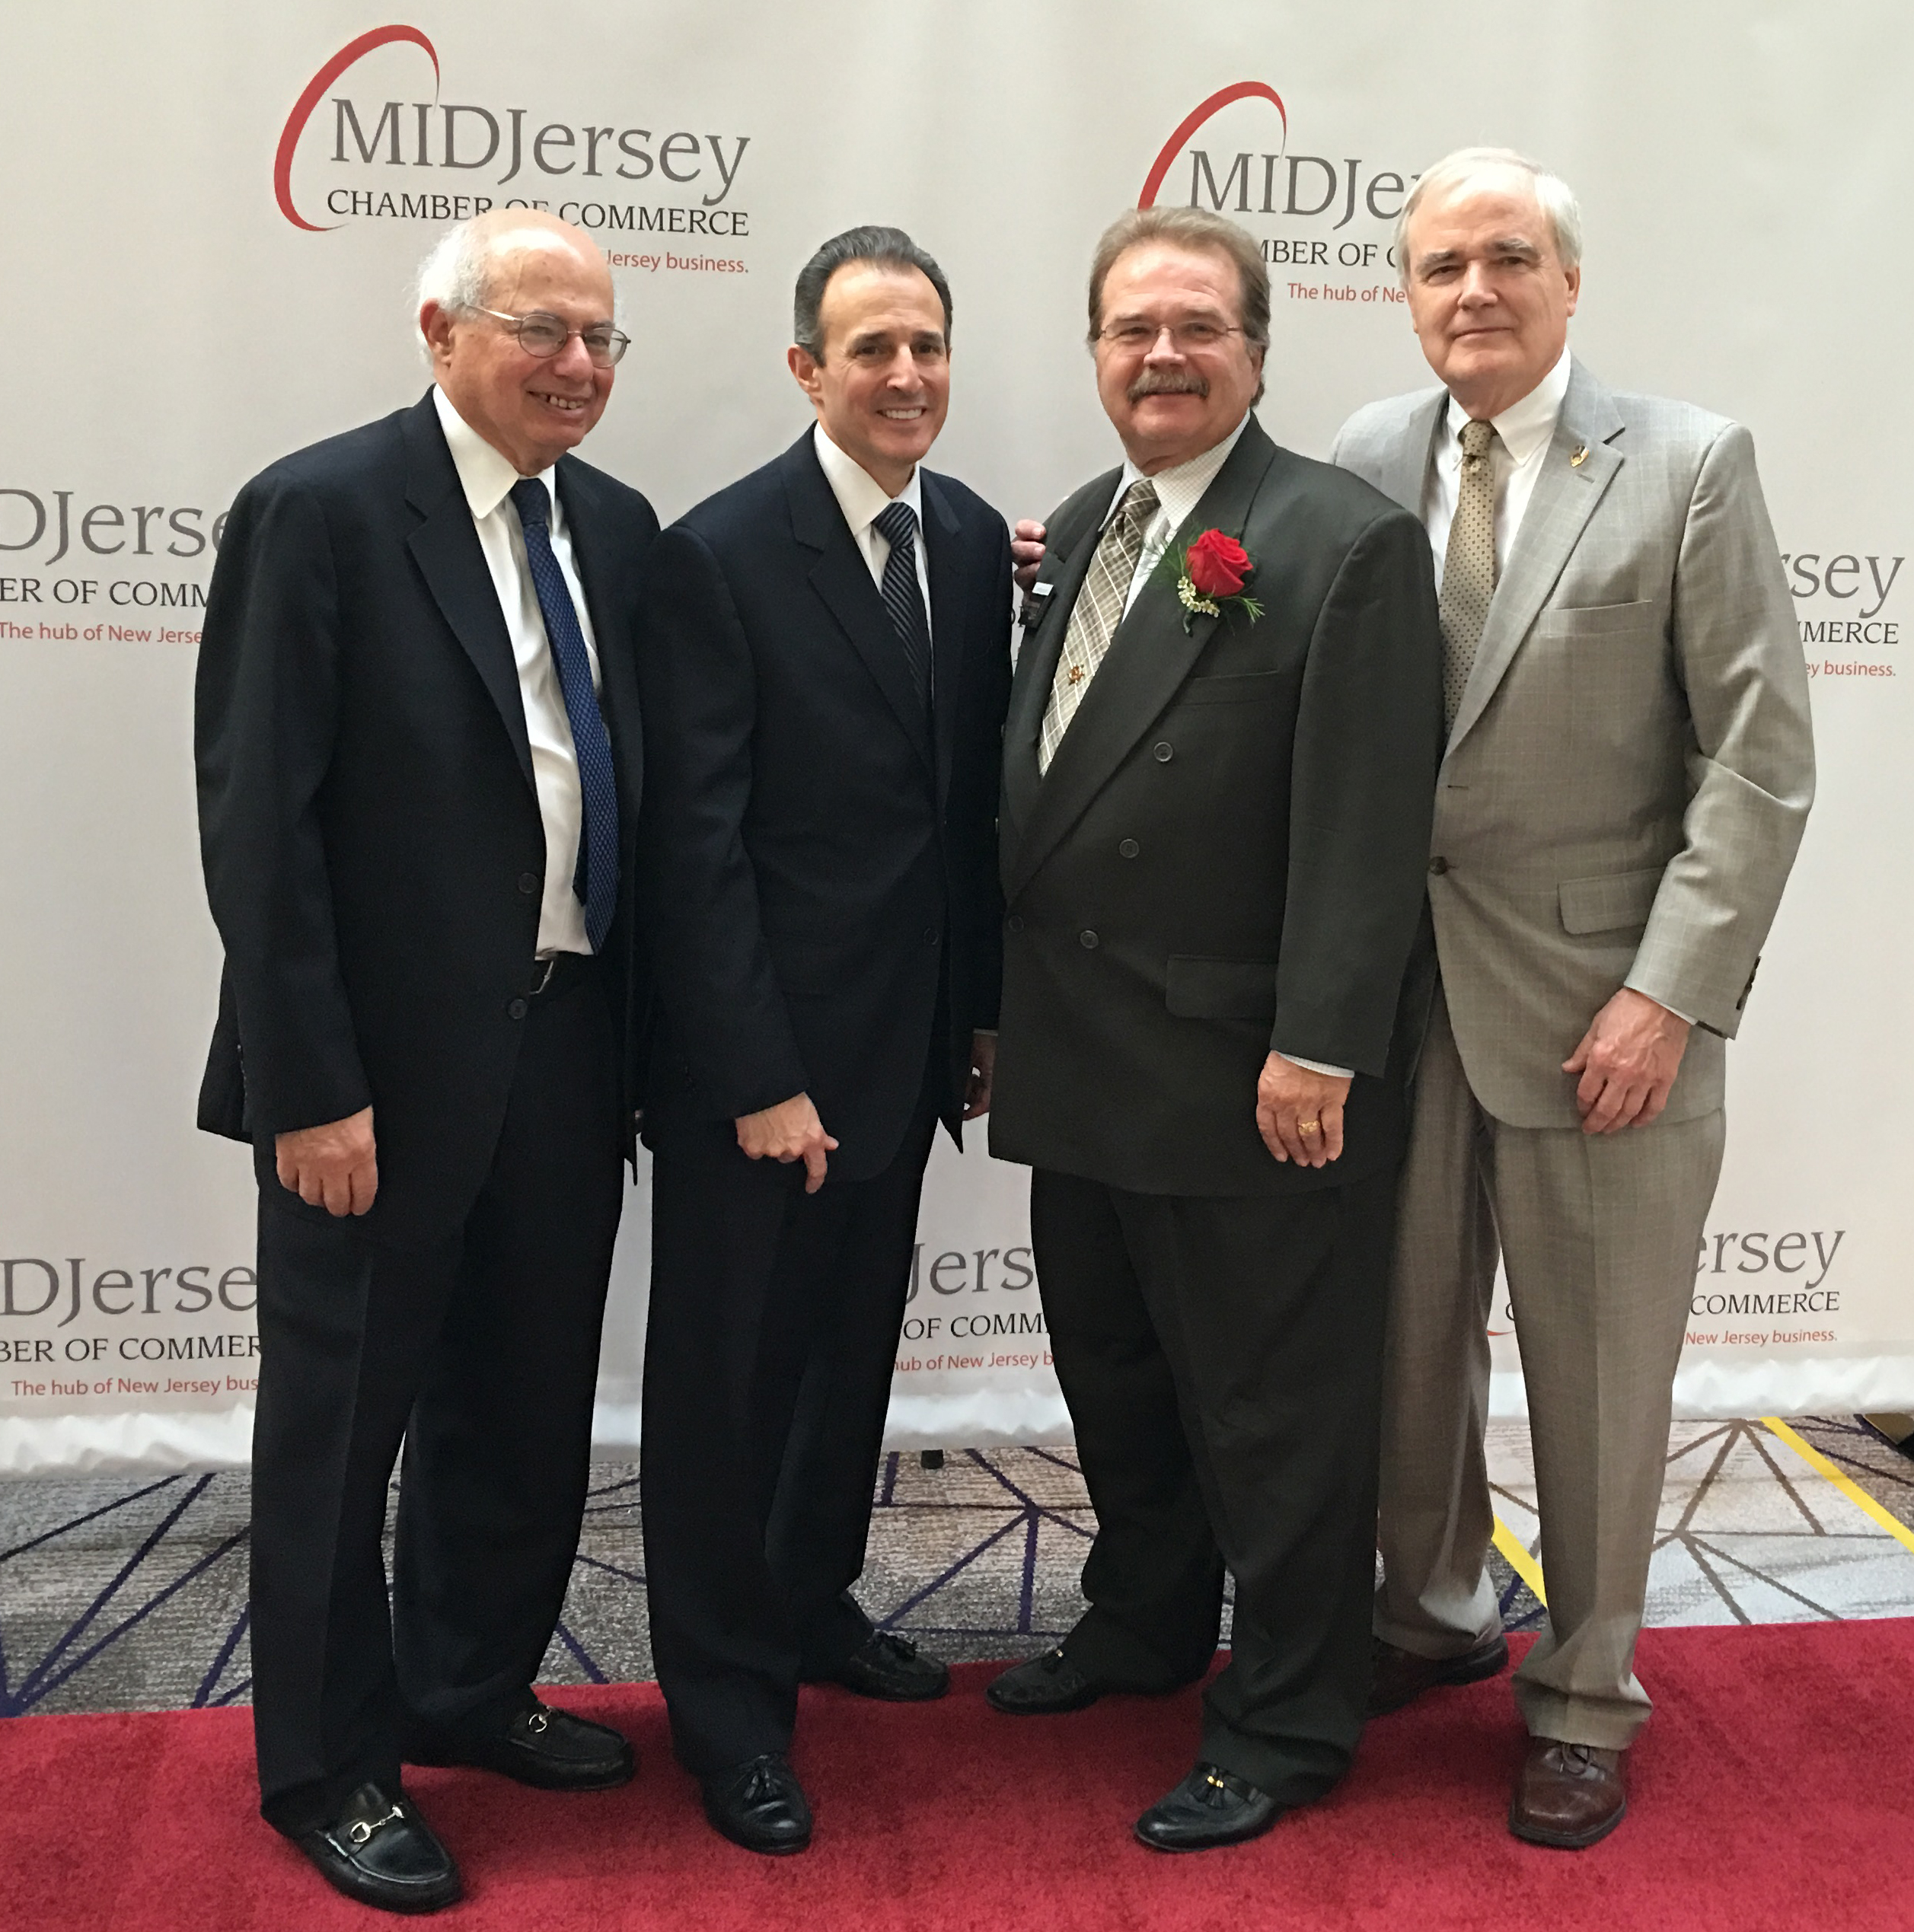 (L-R) Barry Szaferman, founding partner, Szaferman, Lakind, Blumstein & Blader, P.C.; Jim Bartolomei, principal-in-charge, HBK CPAs & Consultants, Jeffrey Barnhart, Creative Marketing Alliance (CMA) founder, CEO and Outstanding Small Business of the Year honoree; and Patrick M. Ryan, chairman of the board, First Bank, celebrate CMA's more than 29 years of business success at the MIDJersey Chamber of Commerce Annual Awards Gala on April 21 at the Hyatt Regency in Princeton.